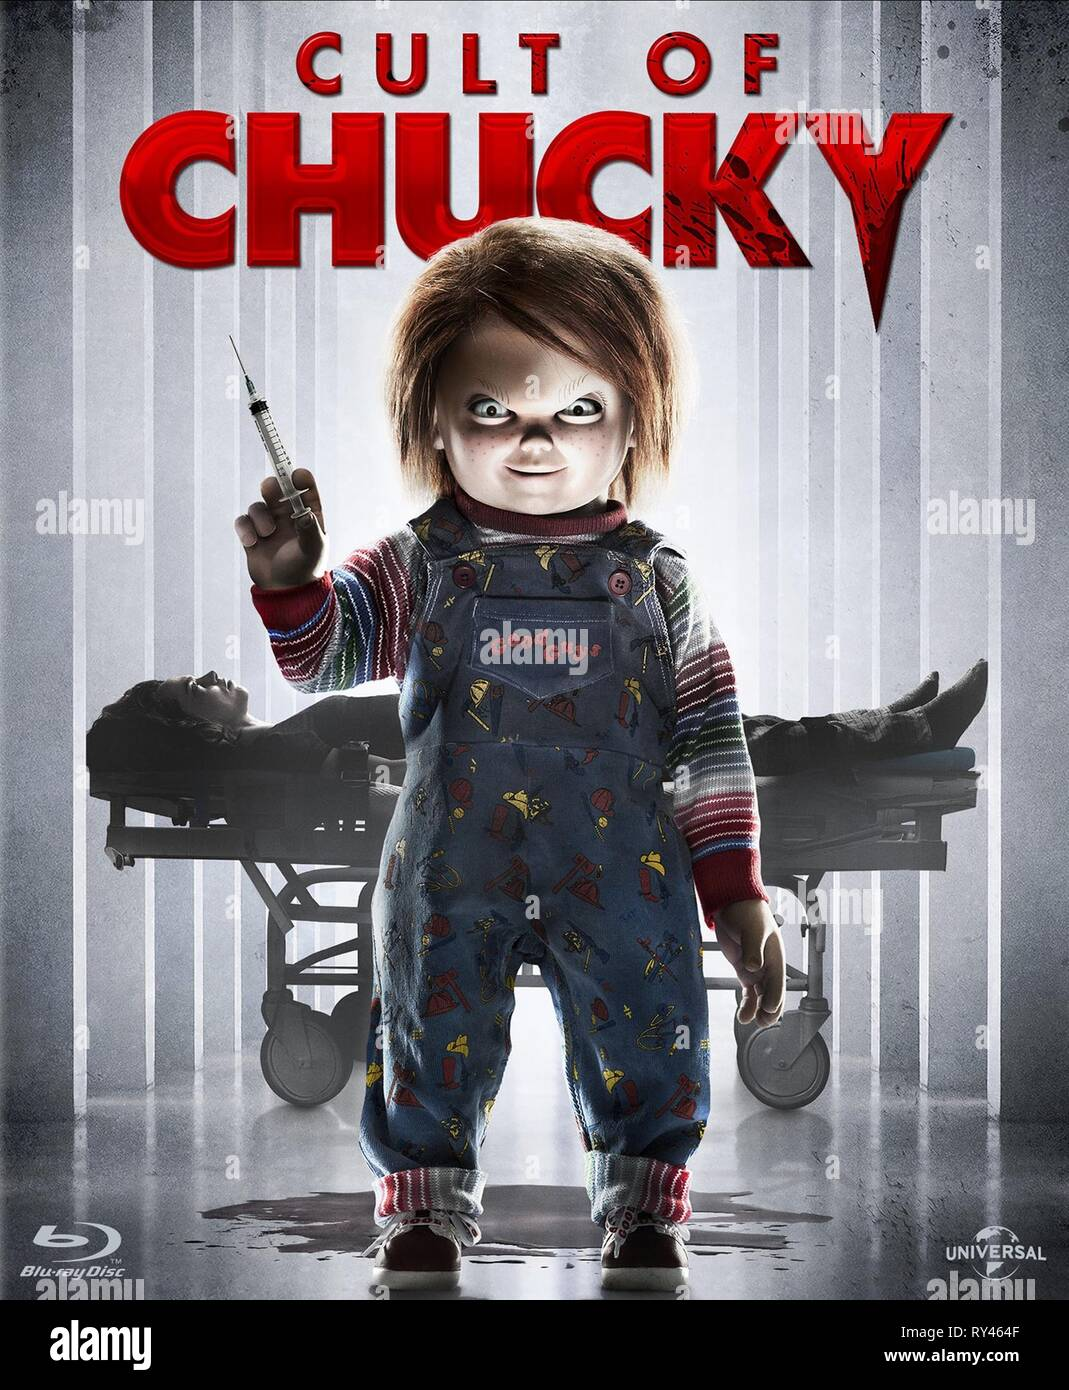 CHUCKY POSTER, CULT OF CHUCKY, 2017 - Stock Image